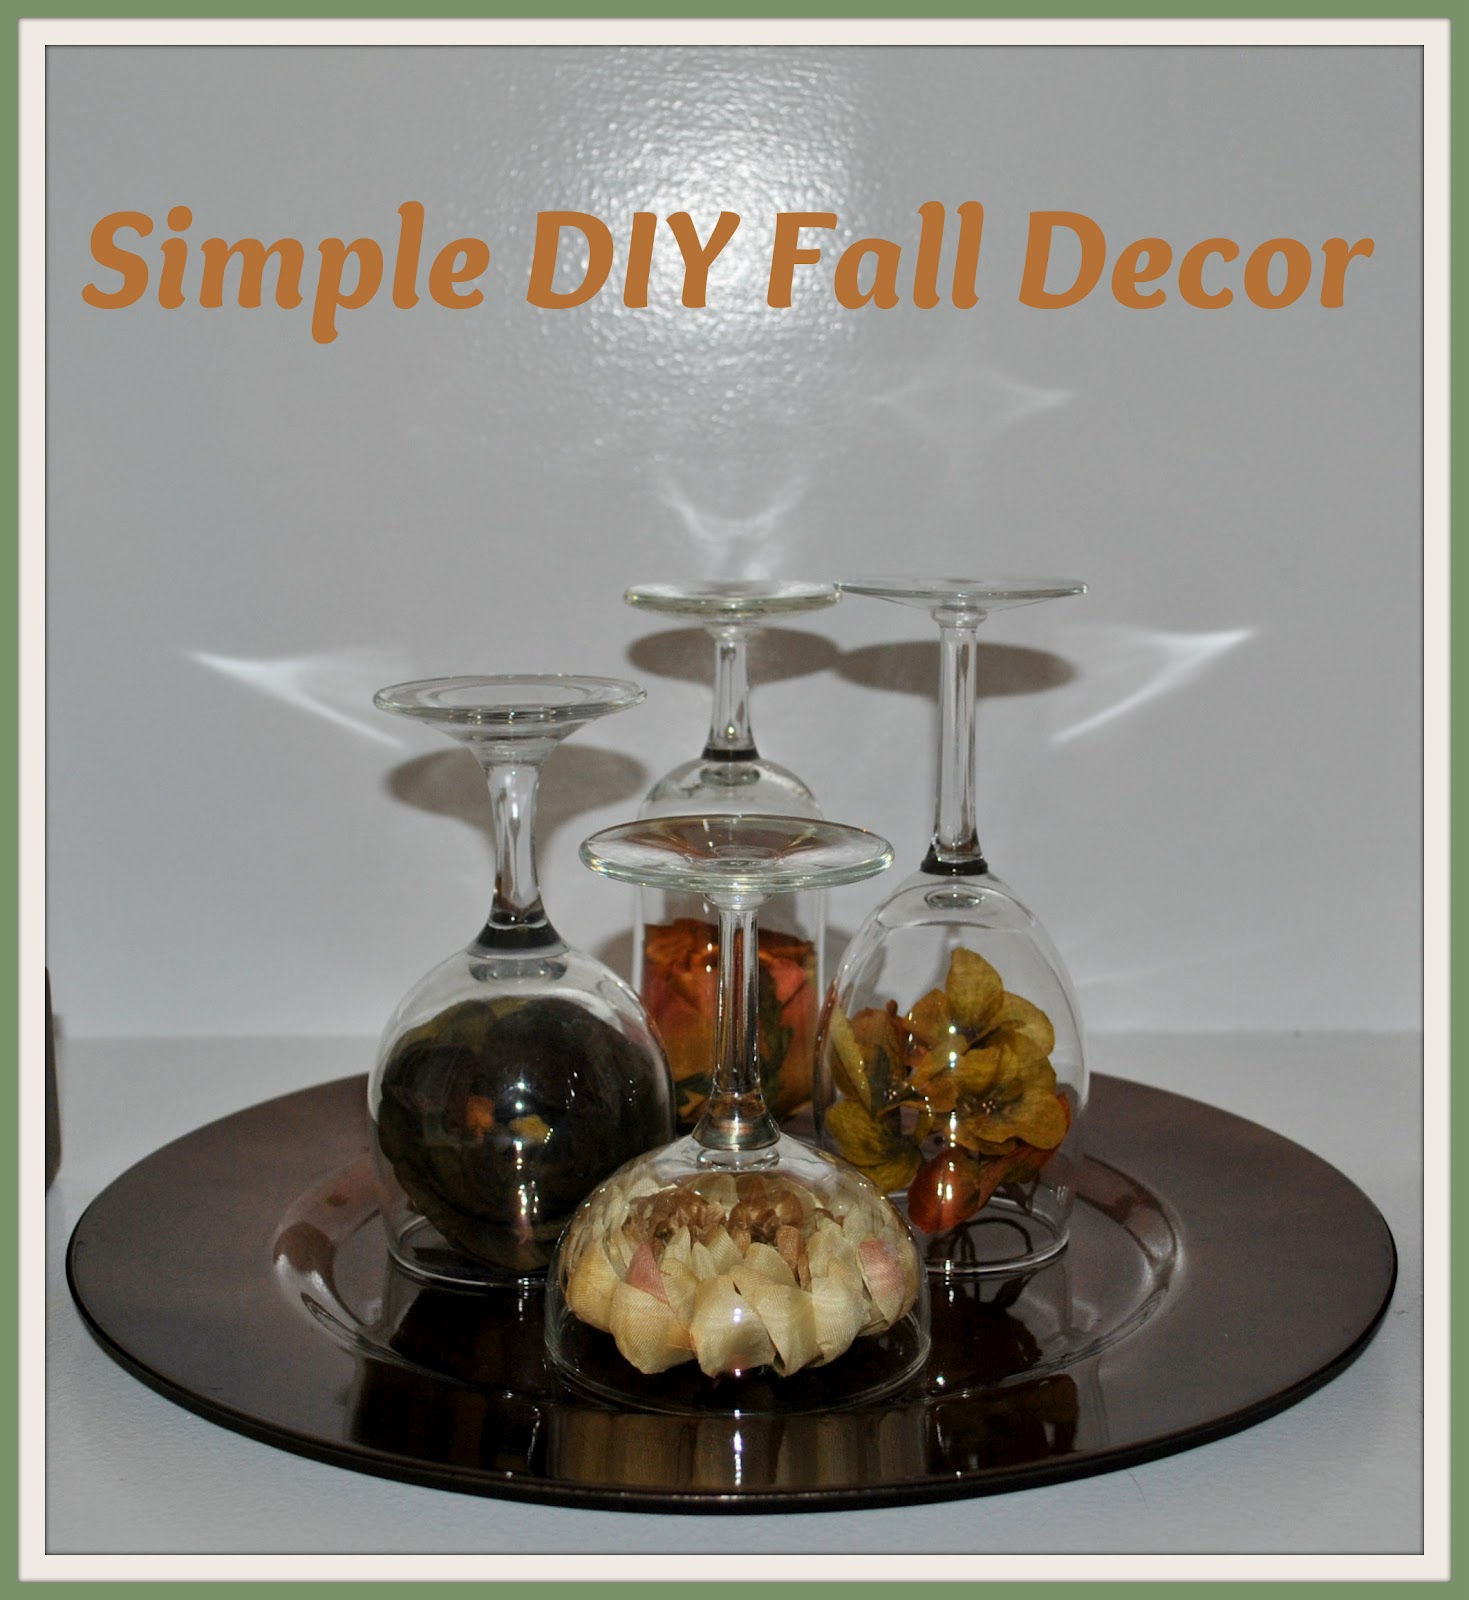 simple diy craft for fall decor - Diy Fall Decor